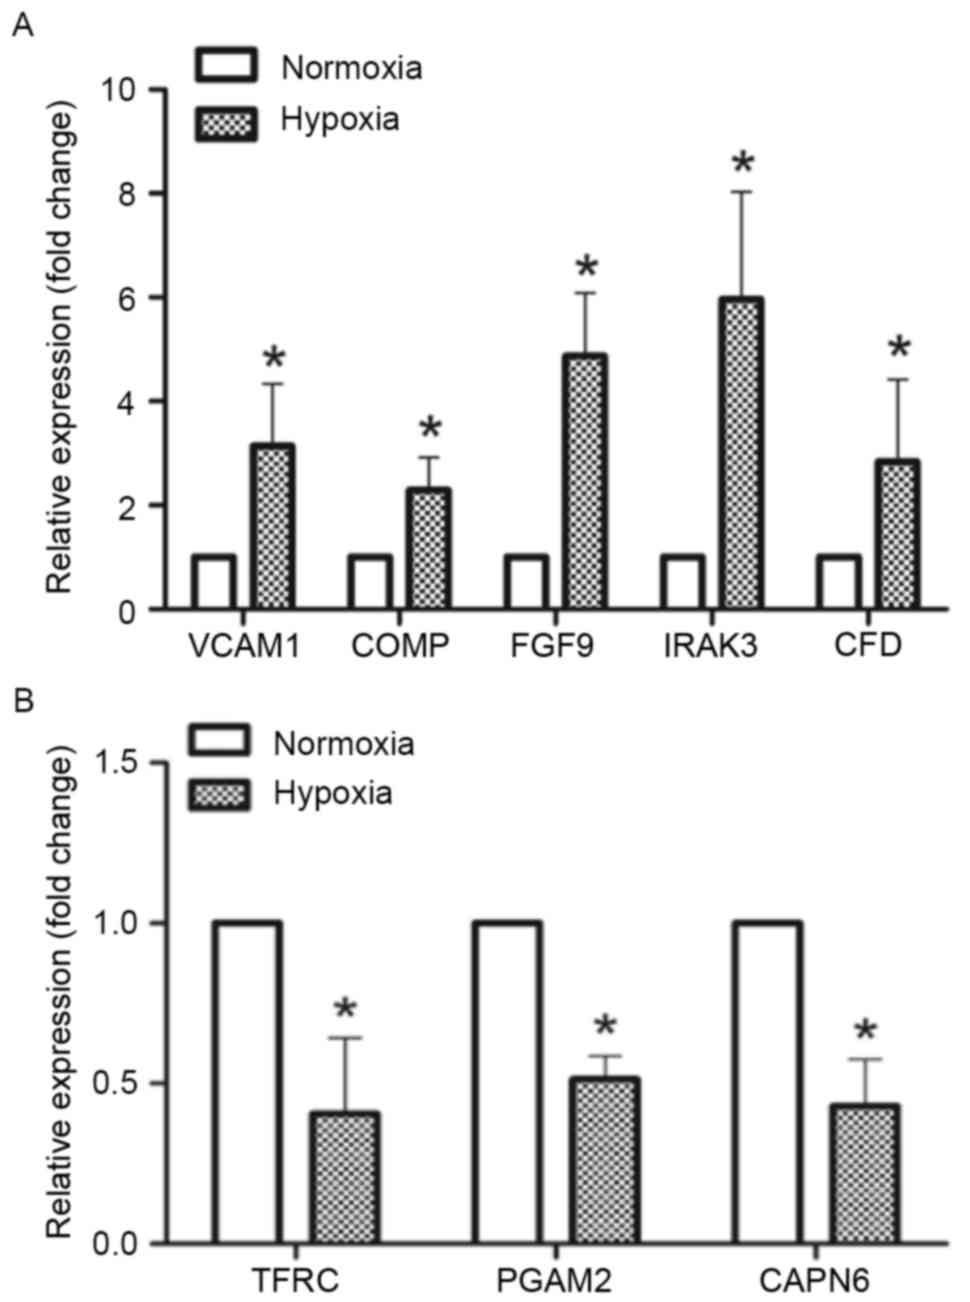 General regulatory effects of hypoxia on human cartilage